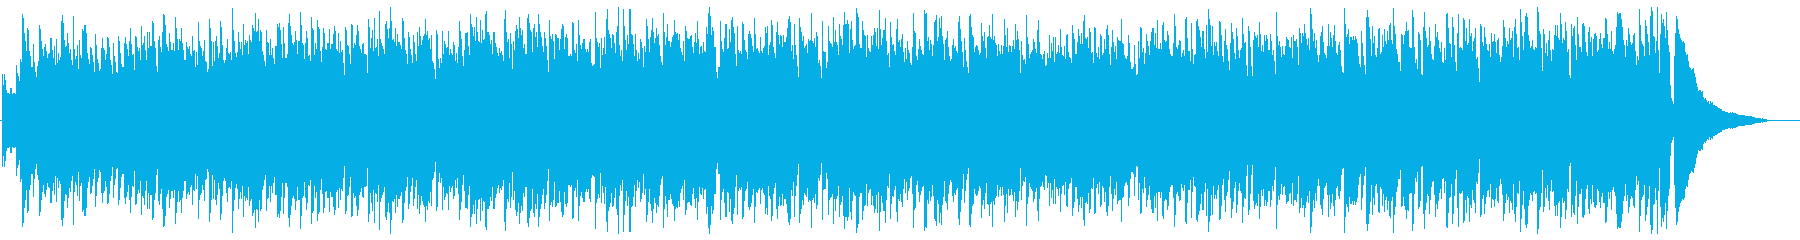 Sometimes it feels like a southern country's reproduced waveform